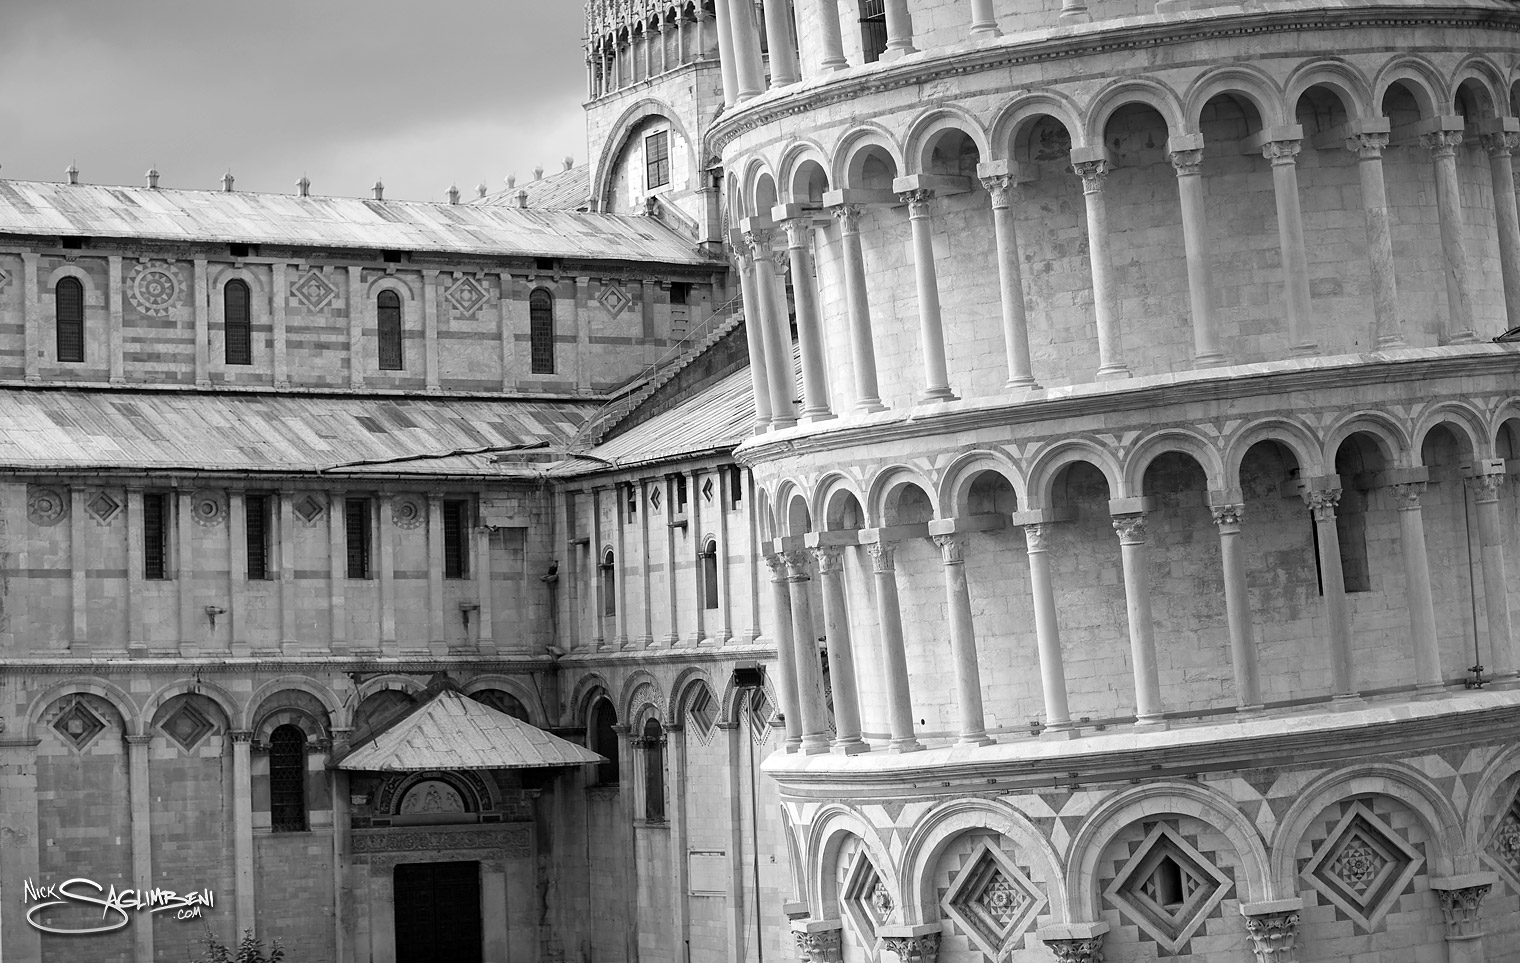 pisa-italy-italia-torre-inclinada-leaning-tower-catedral-cathedral-duomo-by-nick-saglimbeni